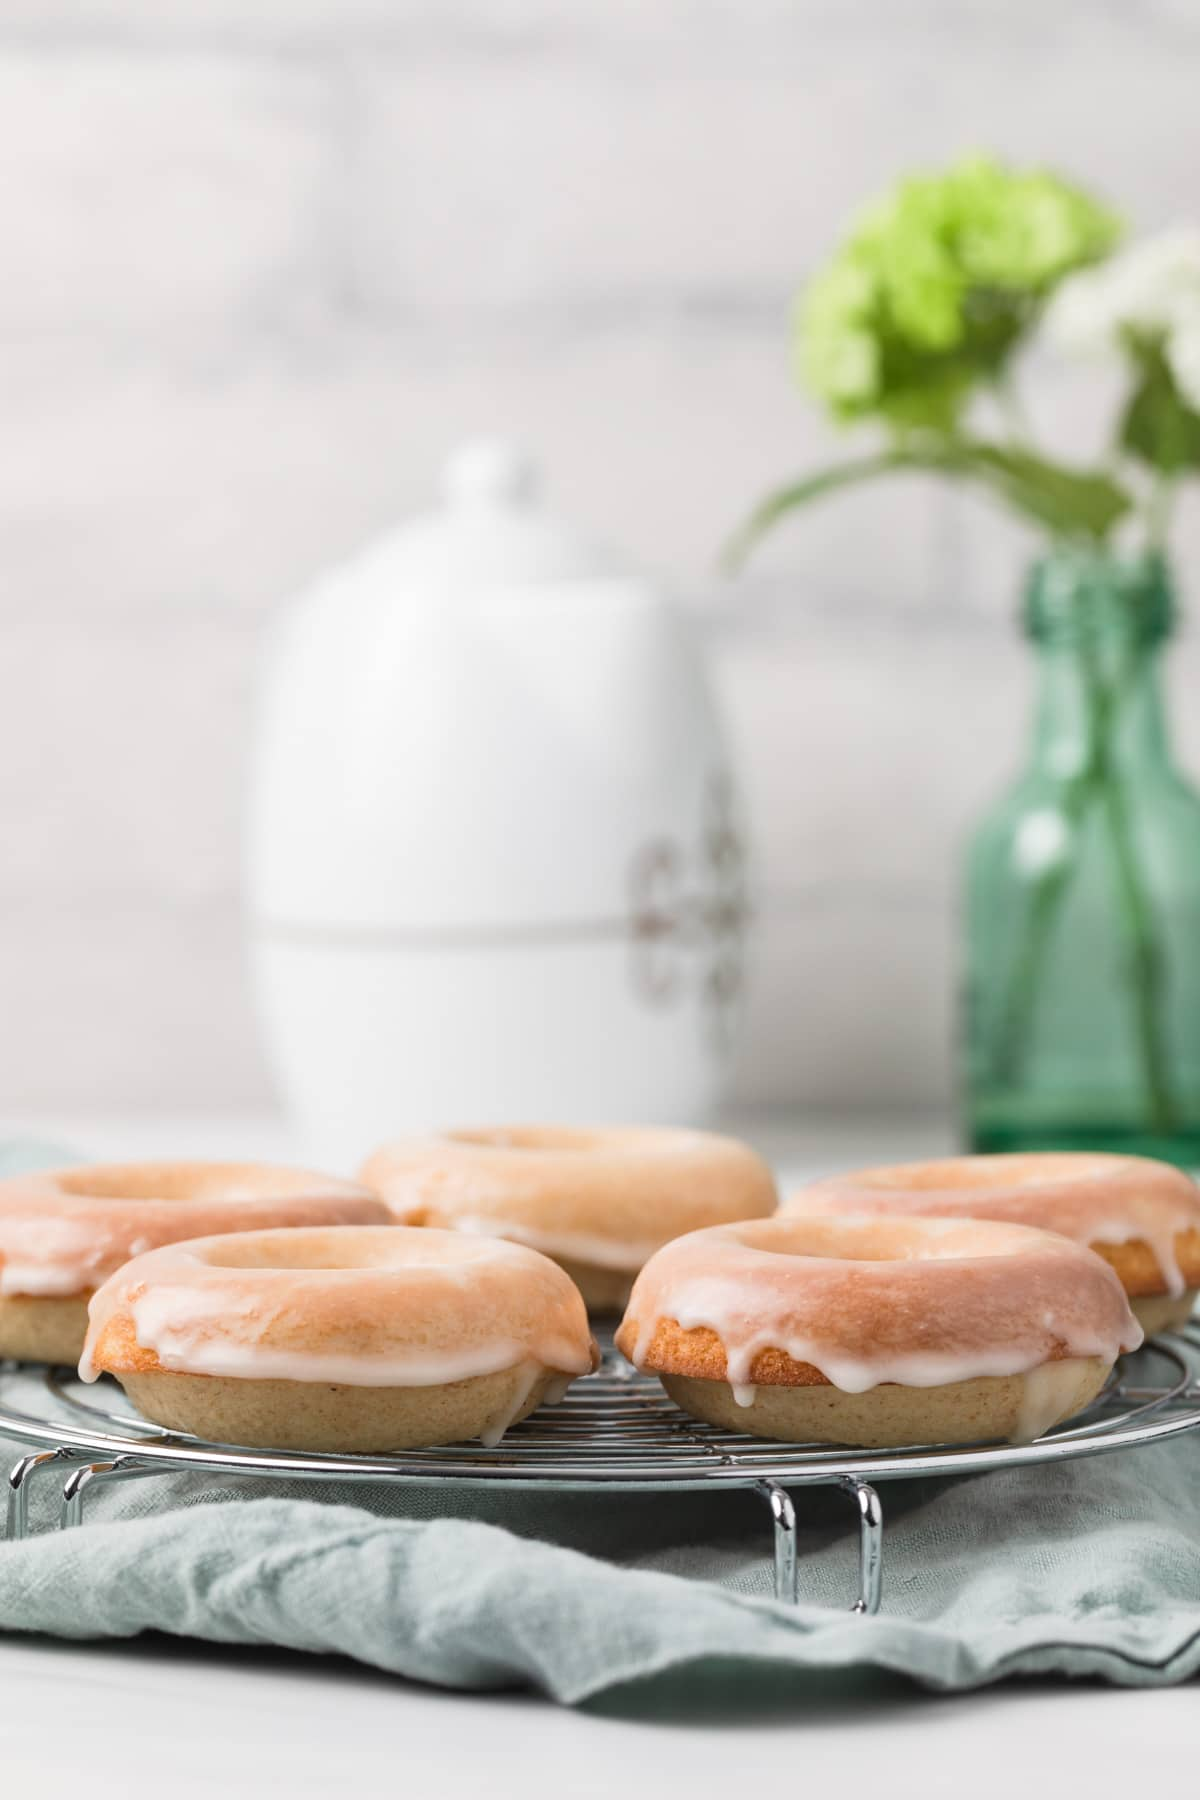 baked donuts arranged in single layer on round metal rack with blue napkin underneath and white tea pot next to glass flower vase